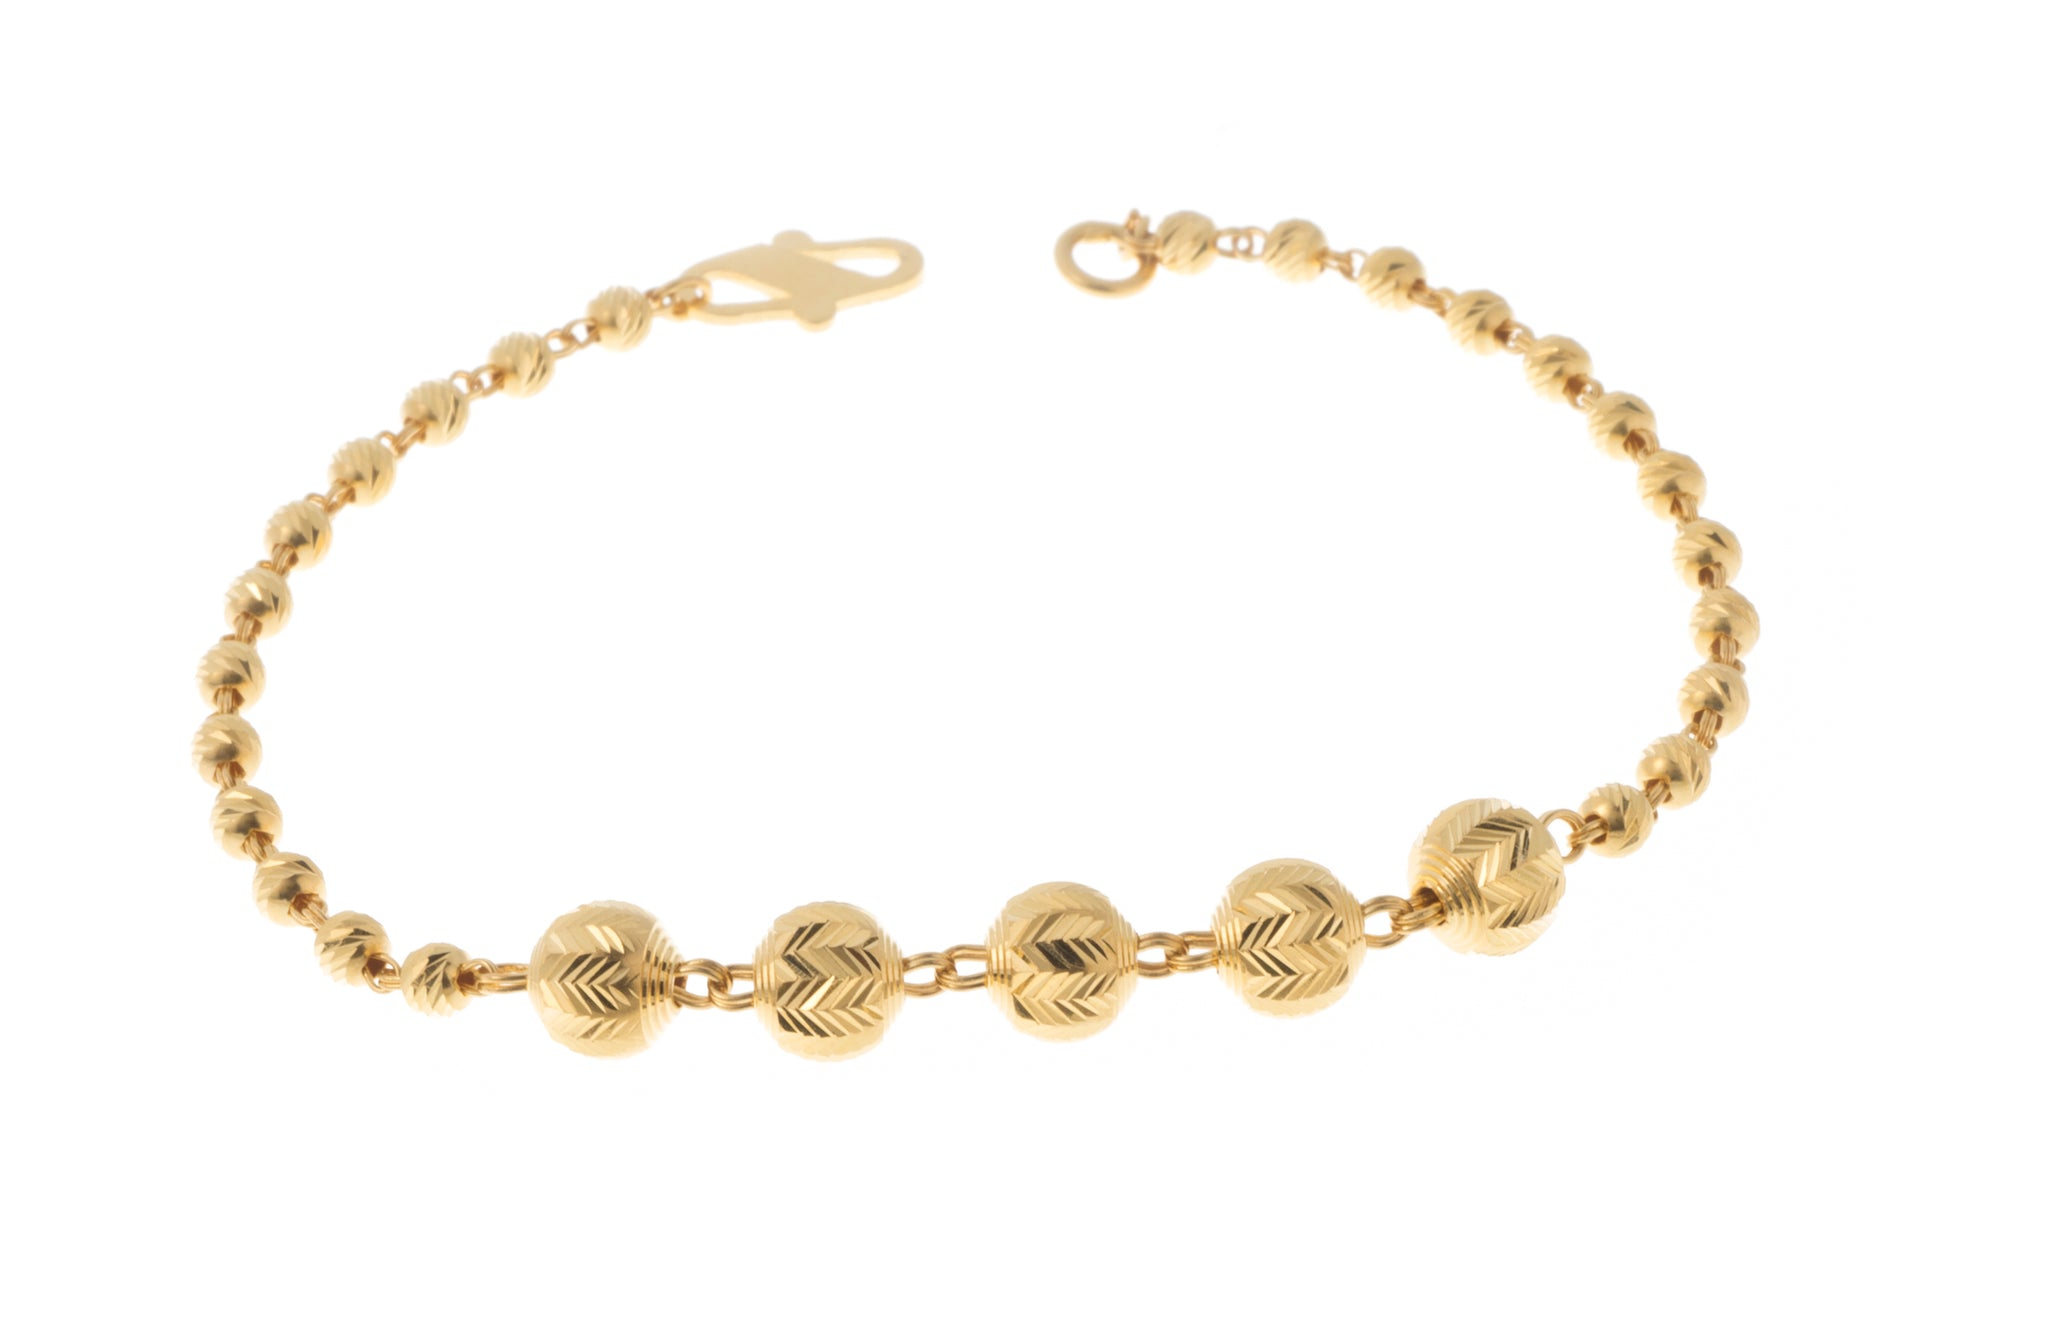 22ct Gold Bracelet with Diamond Cut Design (4.6g) LBR-7387